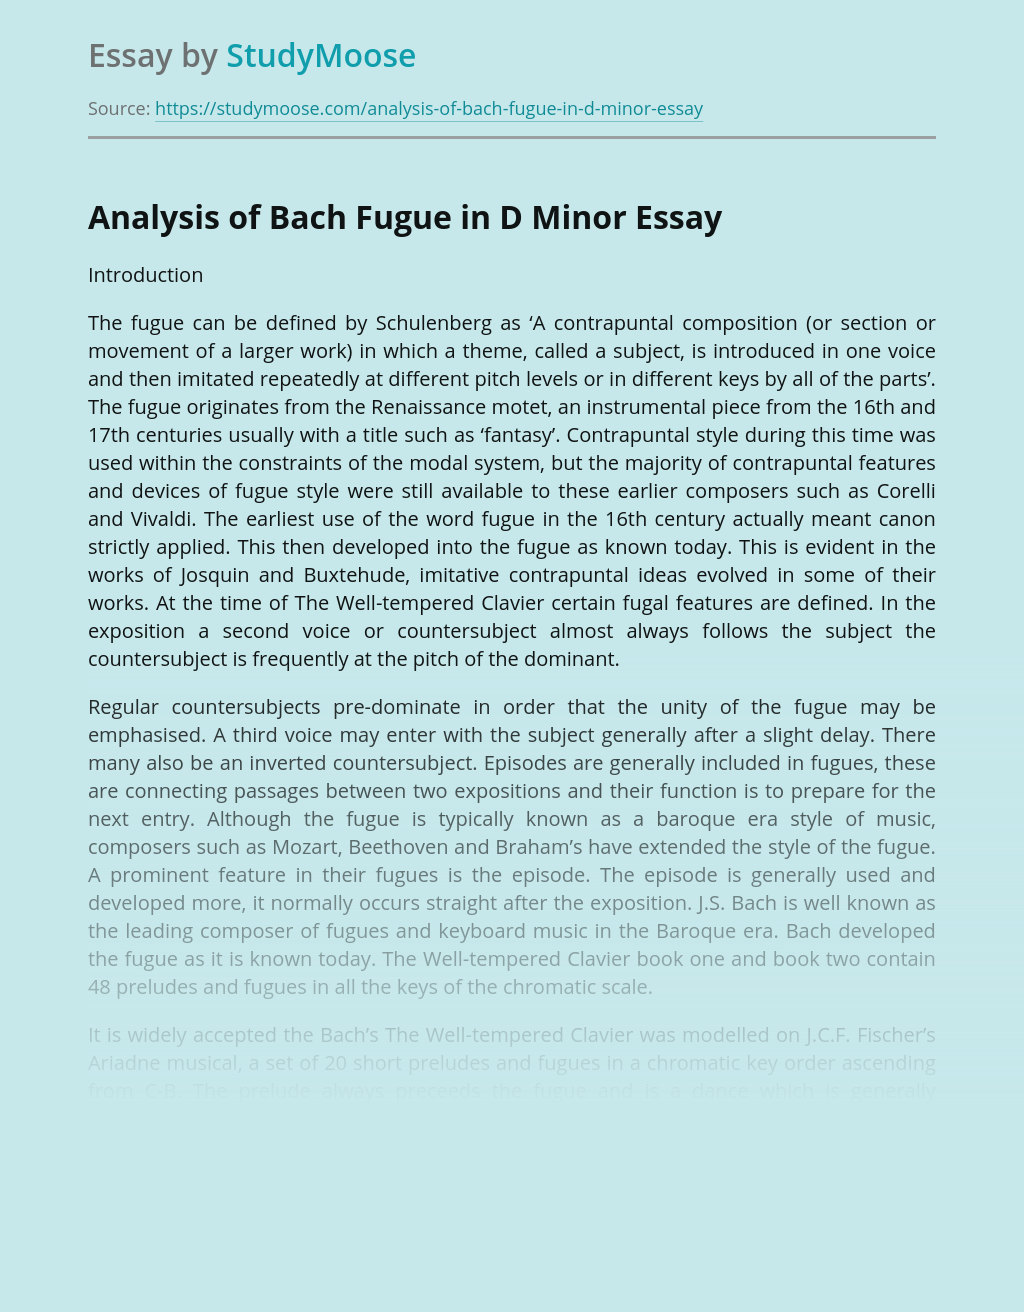 Analysis of Bach Fugue in D Minor